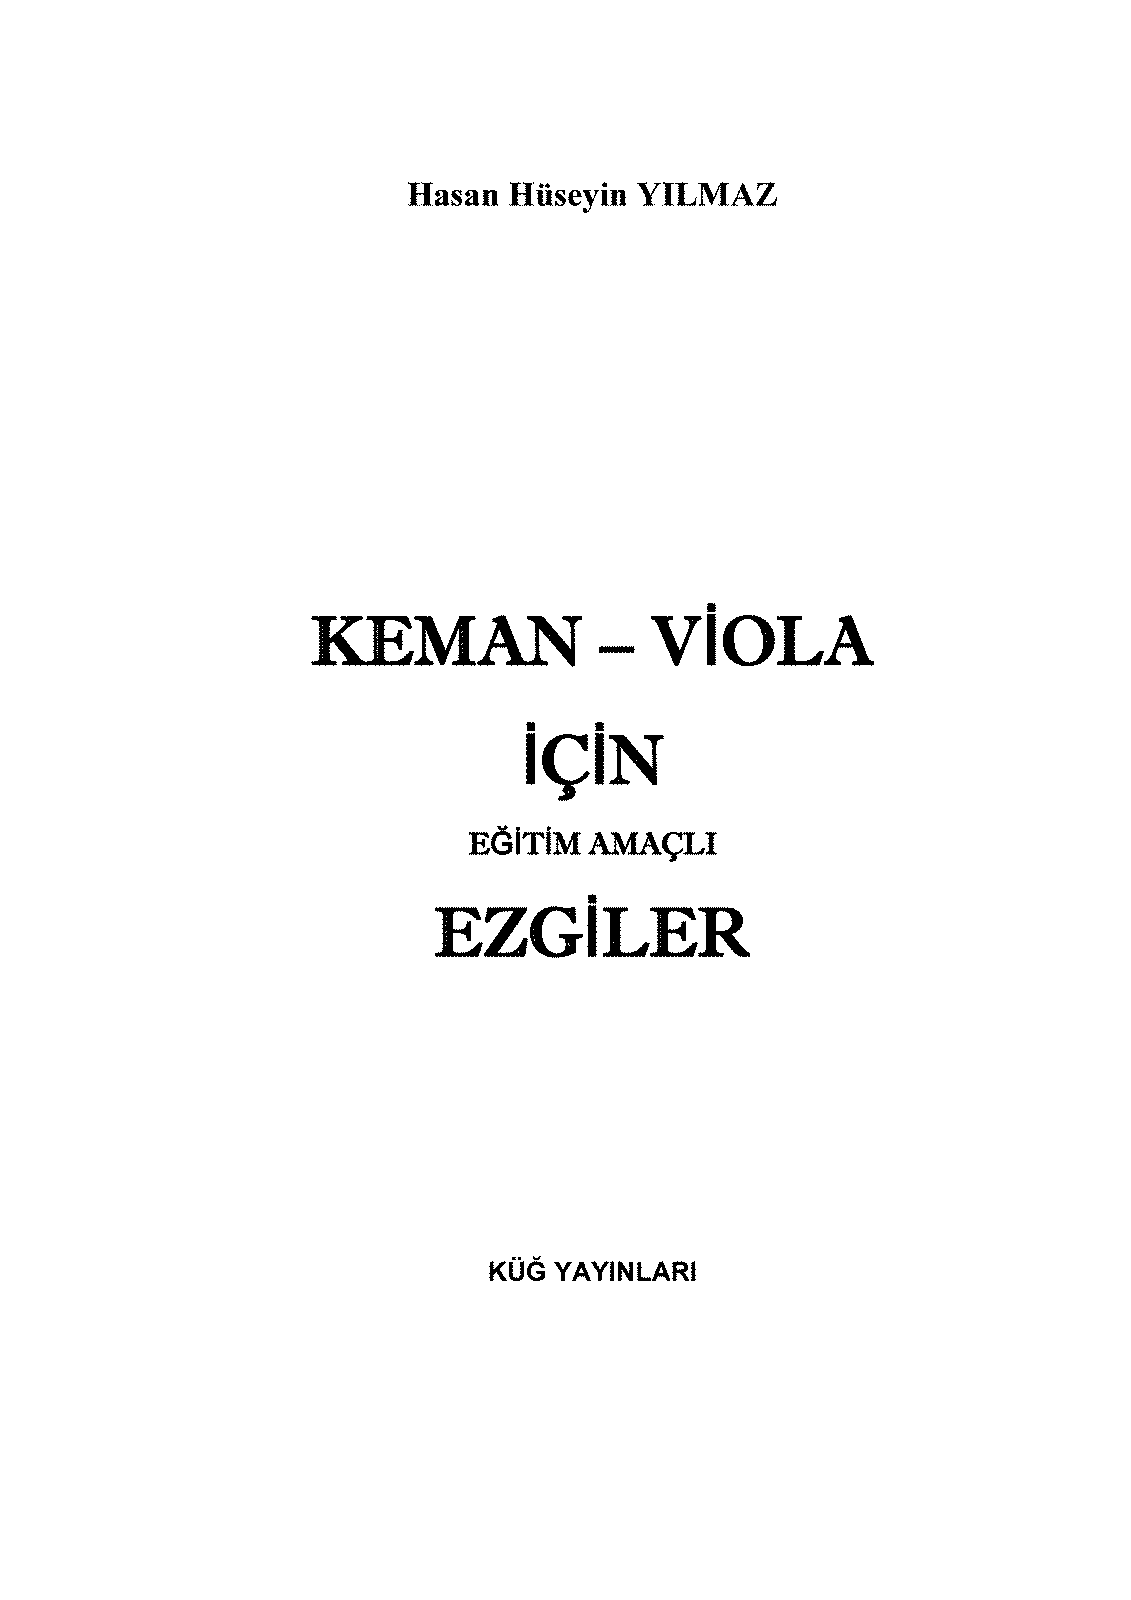 PMLP538816-For Violin and Viola 50 Educational Purpose Melodies. Composed by Hasan Hüseyin Yılmaz.pdf